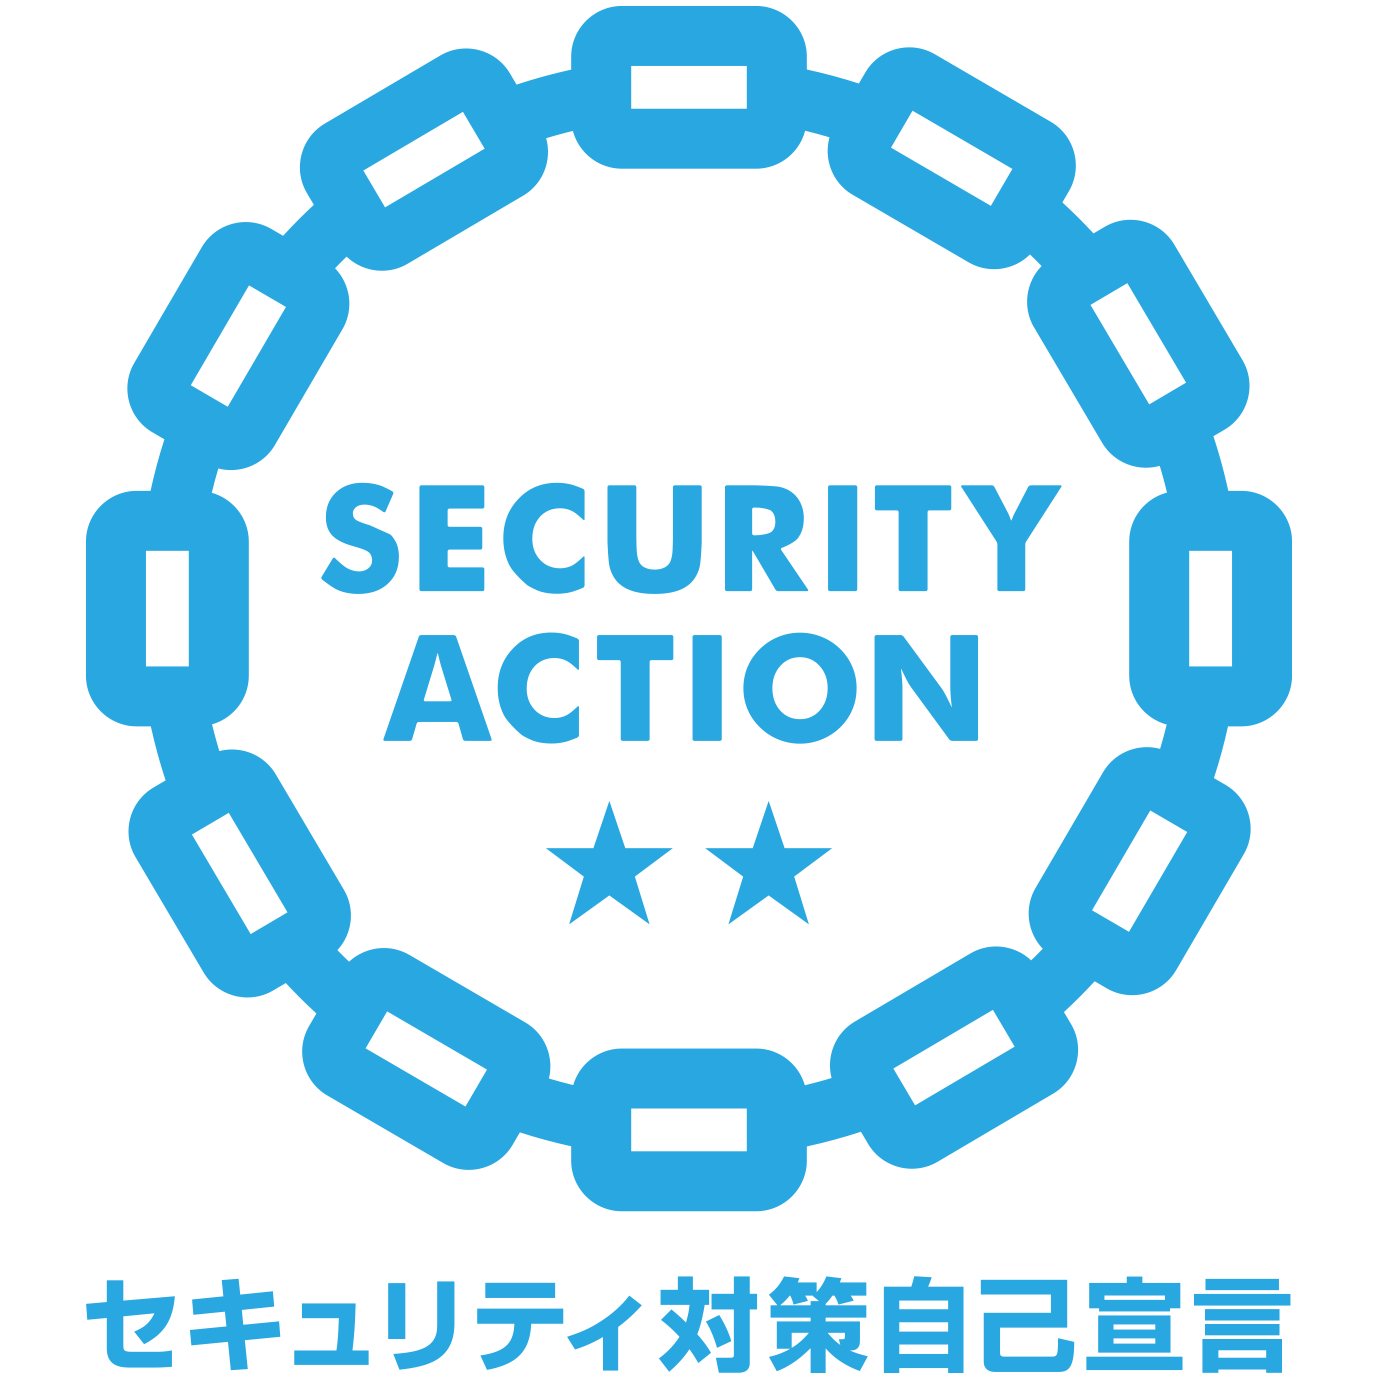 SECURITY ACTION( 一つ星)